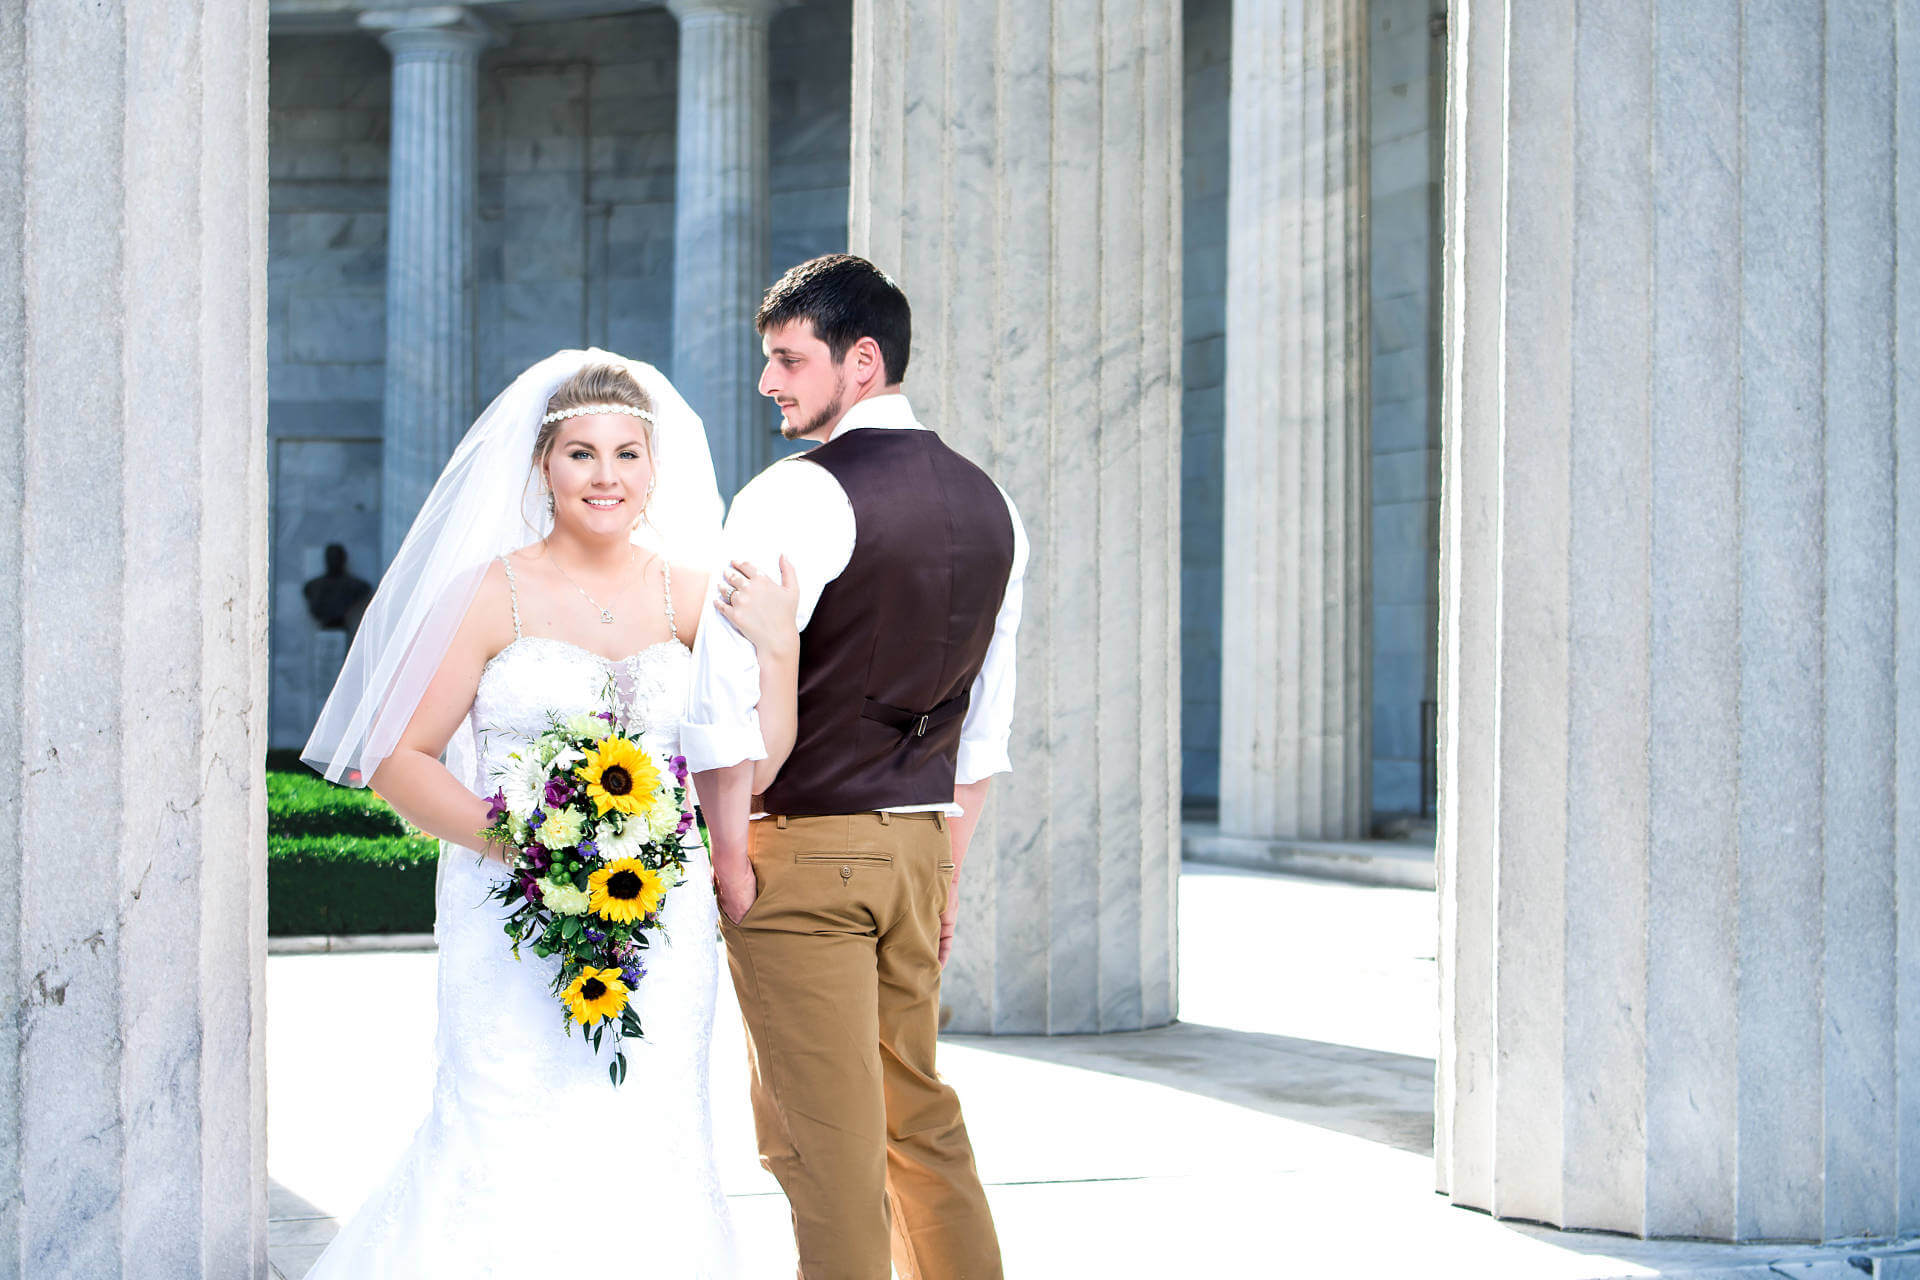 Beautiful Bride and Groom Formal on steps at Mckinley Presidential Library & Museum   Kropp Photography - Wedding Photography Portfolio